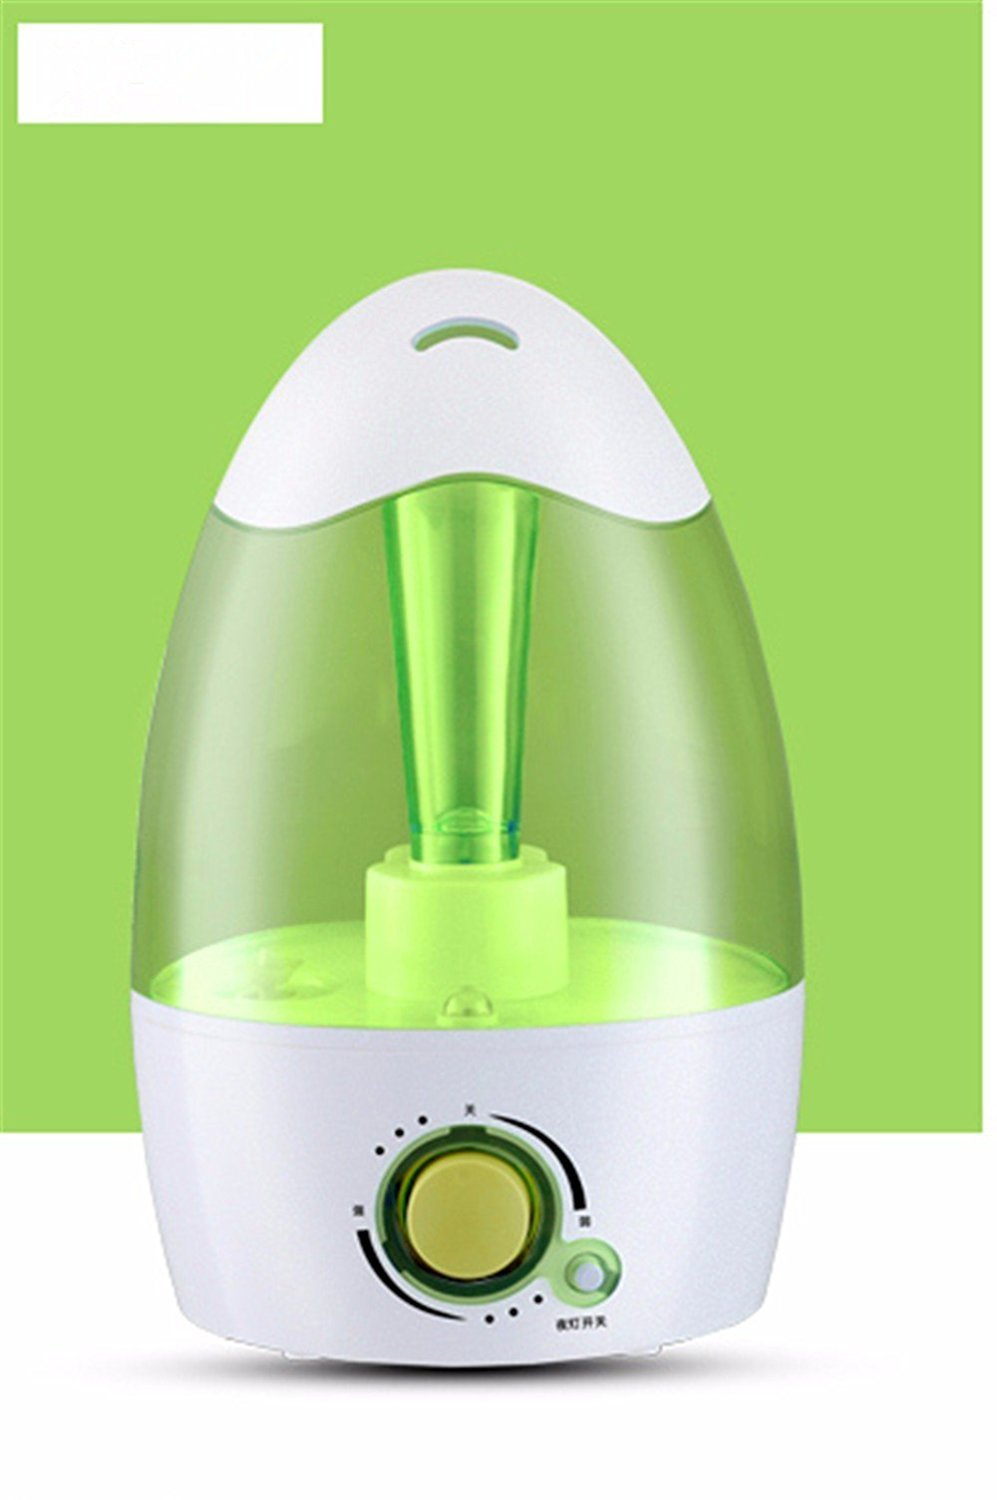 DIDIDD Humidifier mini home ultra - quiet bedroom office humidifier,Green